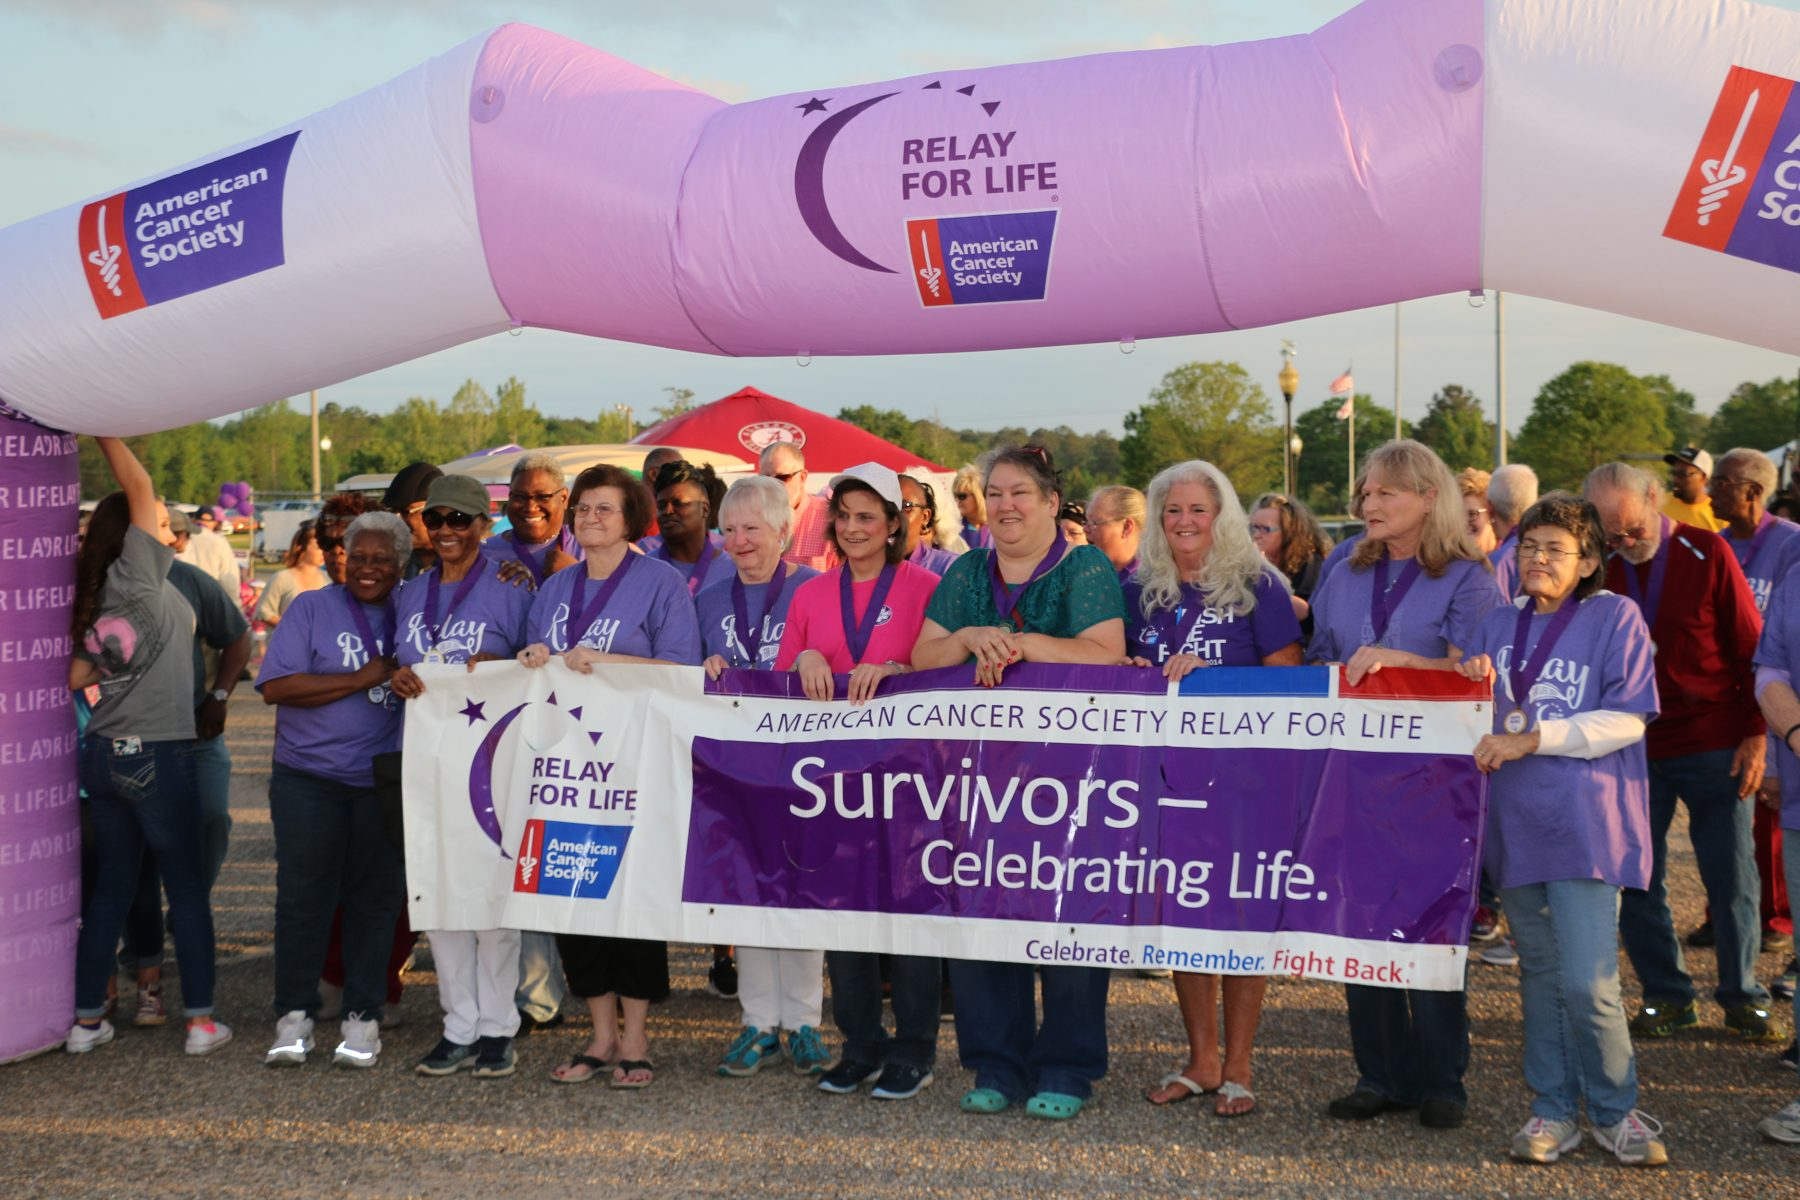 Relay For Life survivors gathering for walk